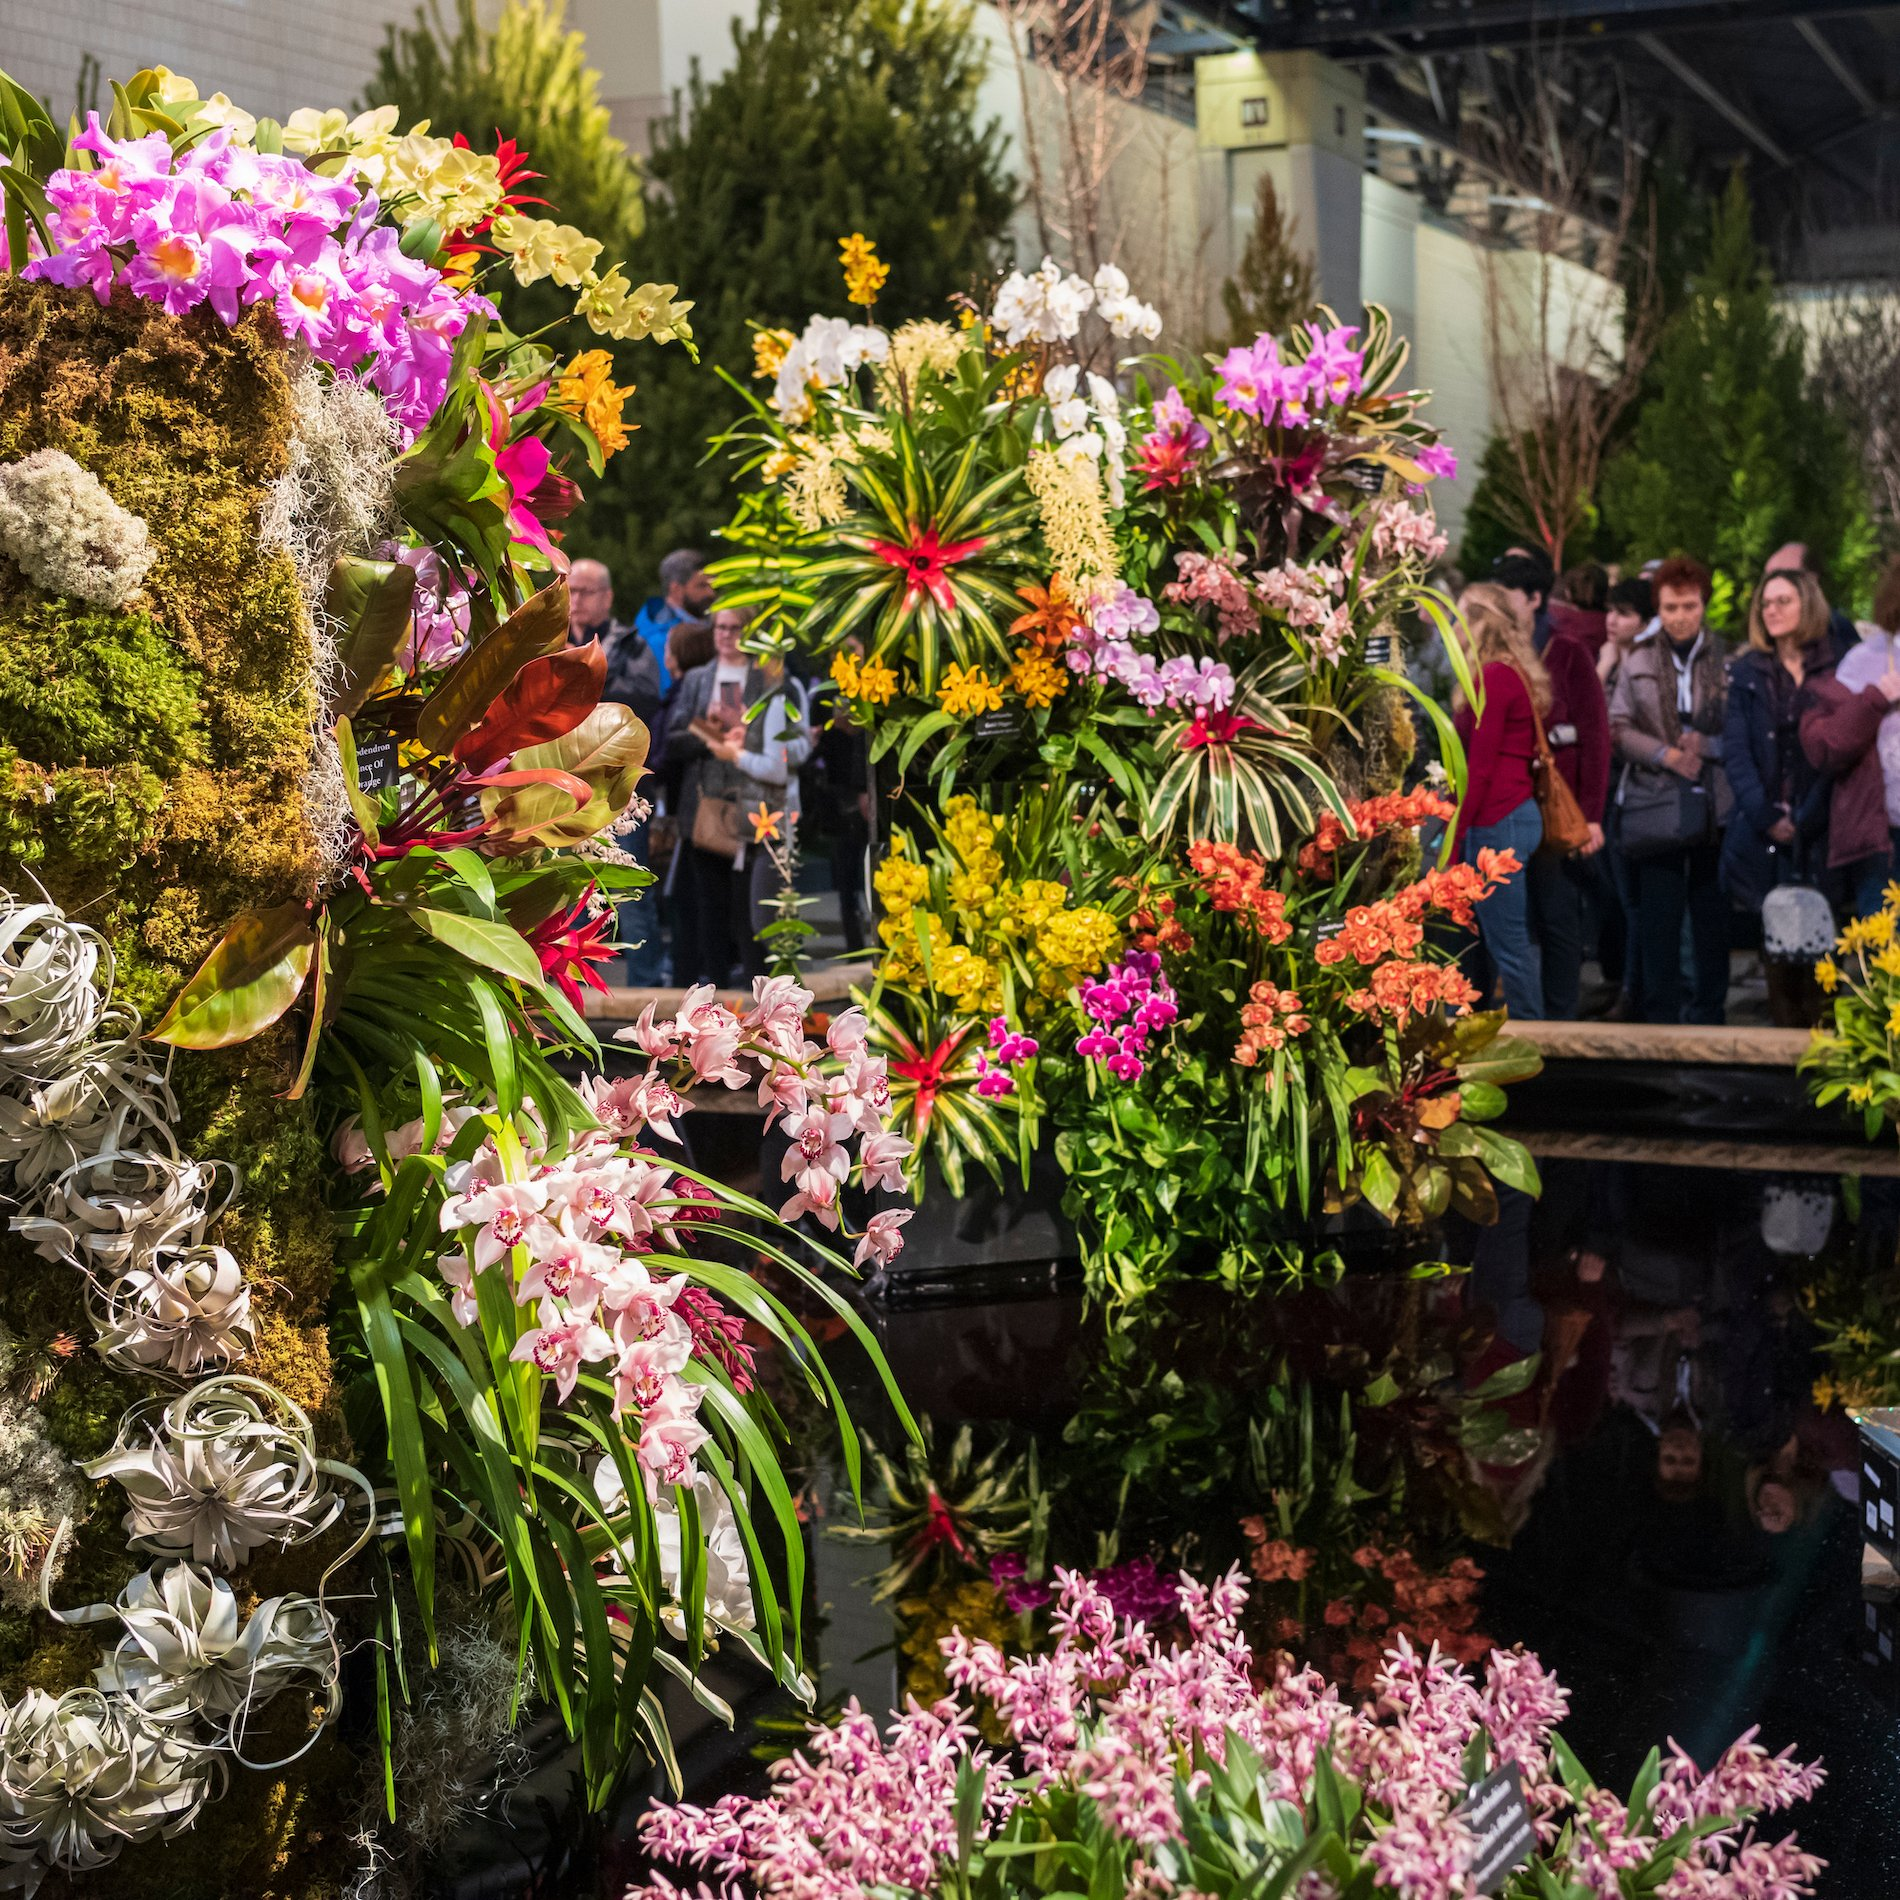 The 2019 Philadelphia Flower Show.